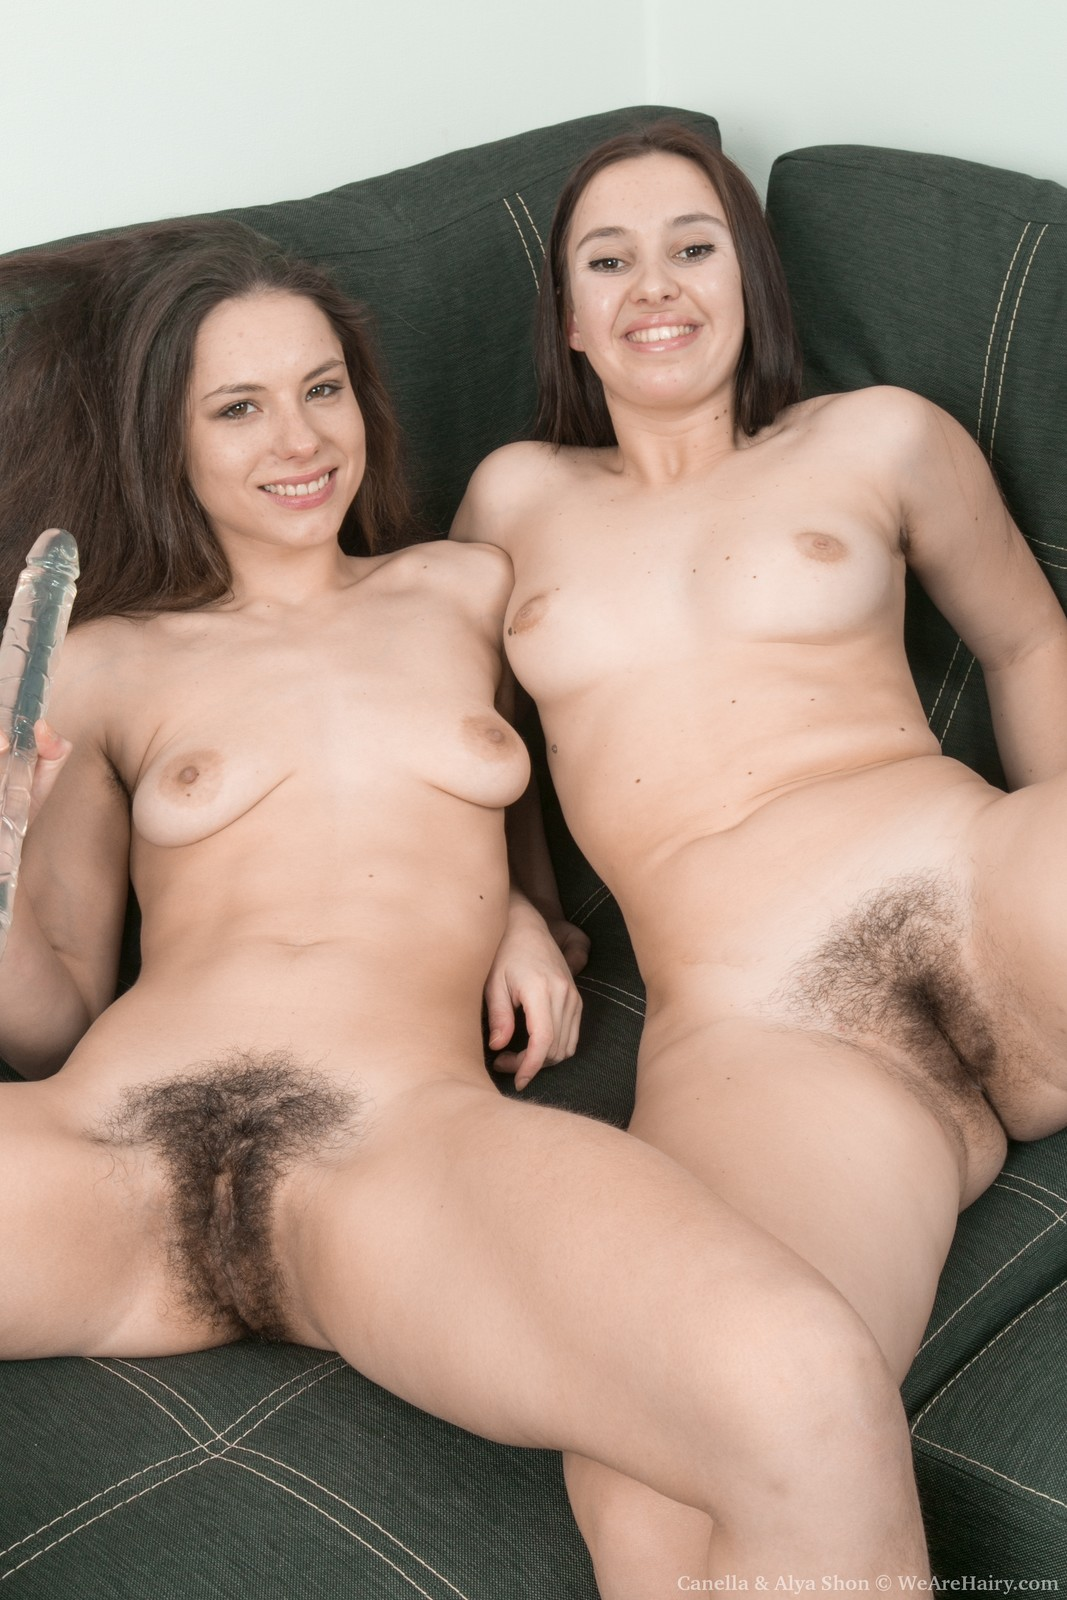 wpid-canella-and-alya-shon-have-lesbian-glass-dildo-fun15.jpg